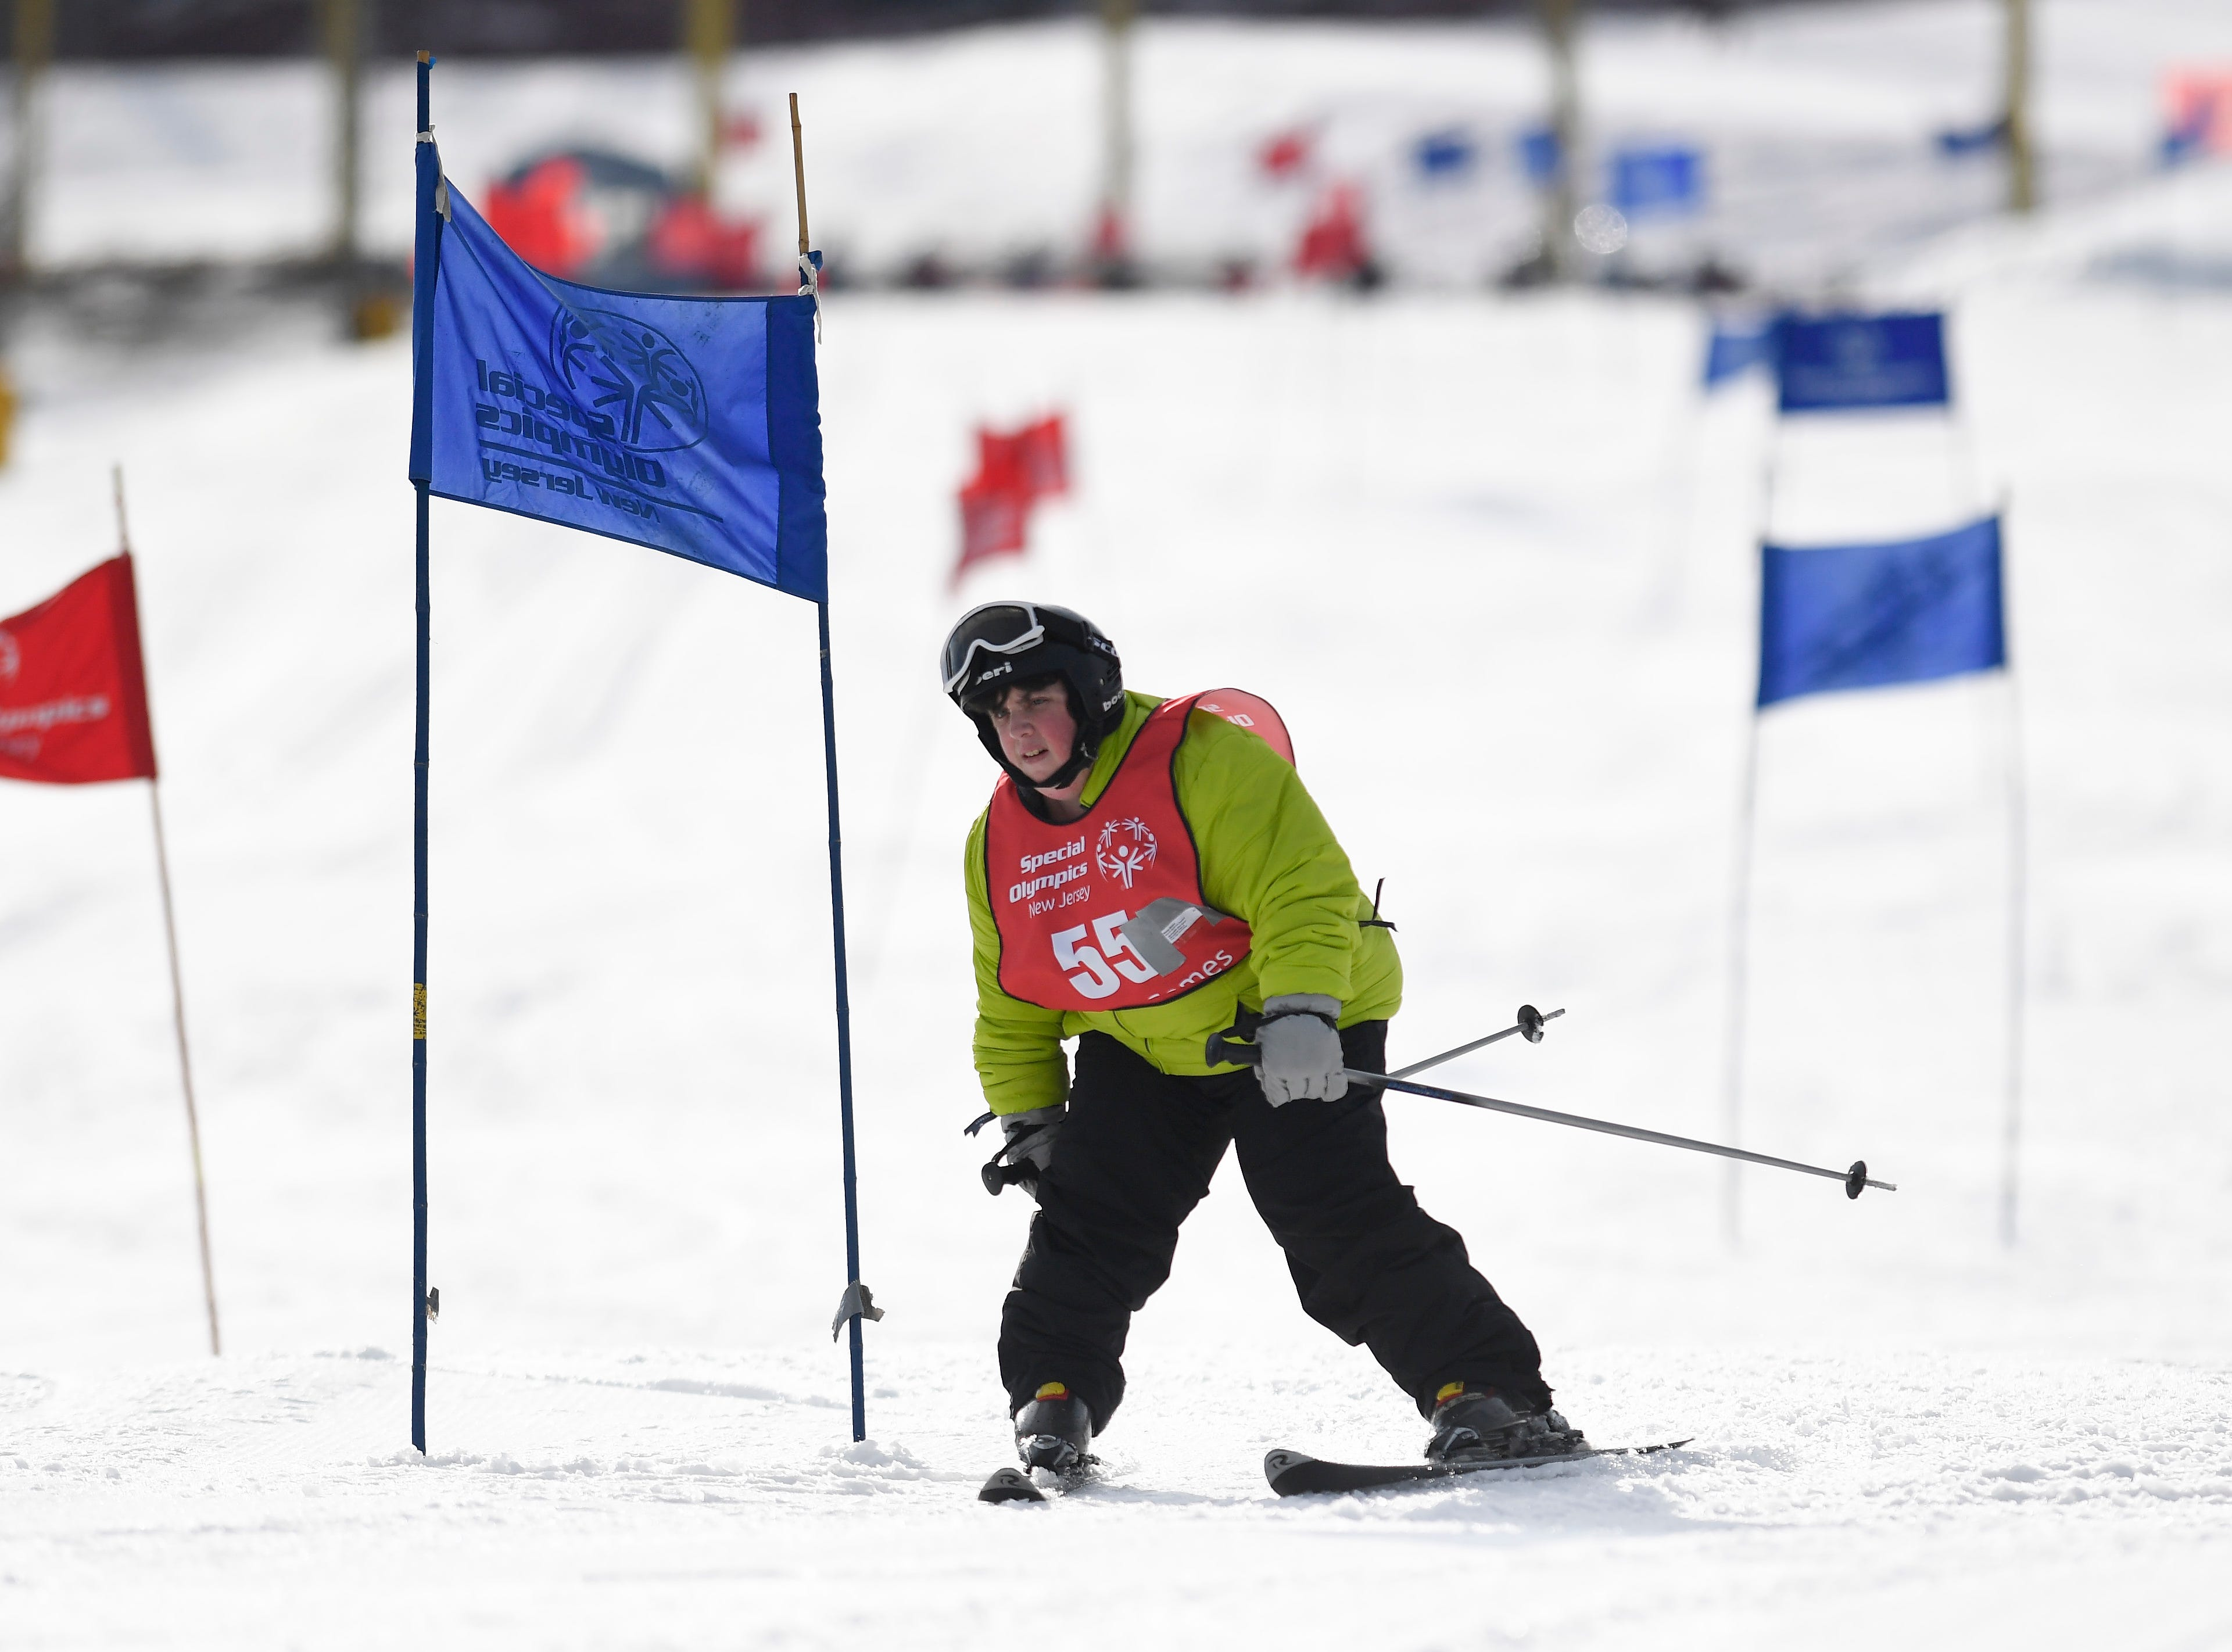 Karen Bruno of Flemington competes in the giant slalom during the Special Olympics New Jersey 2019 Winter Games on Tuesday, Feb. 5, 2019, in Vernon.